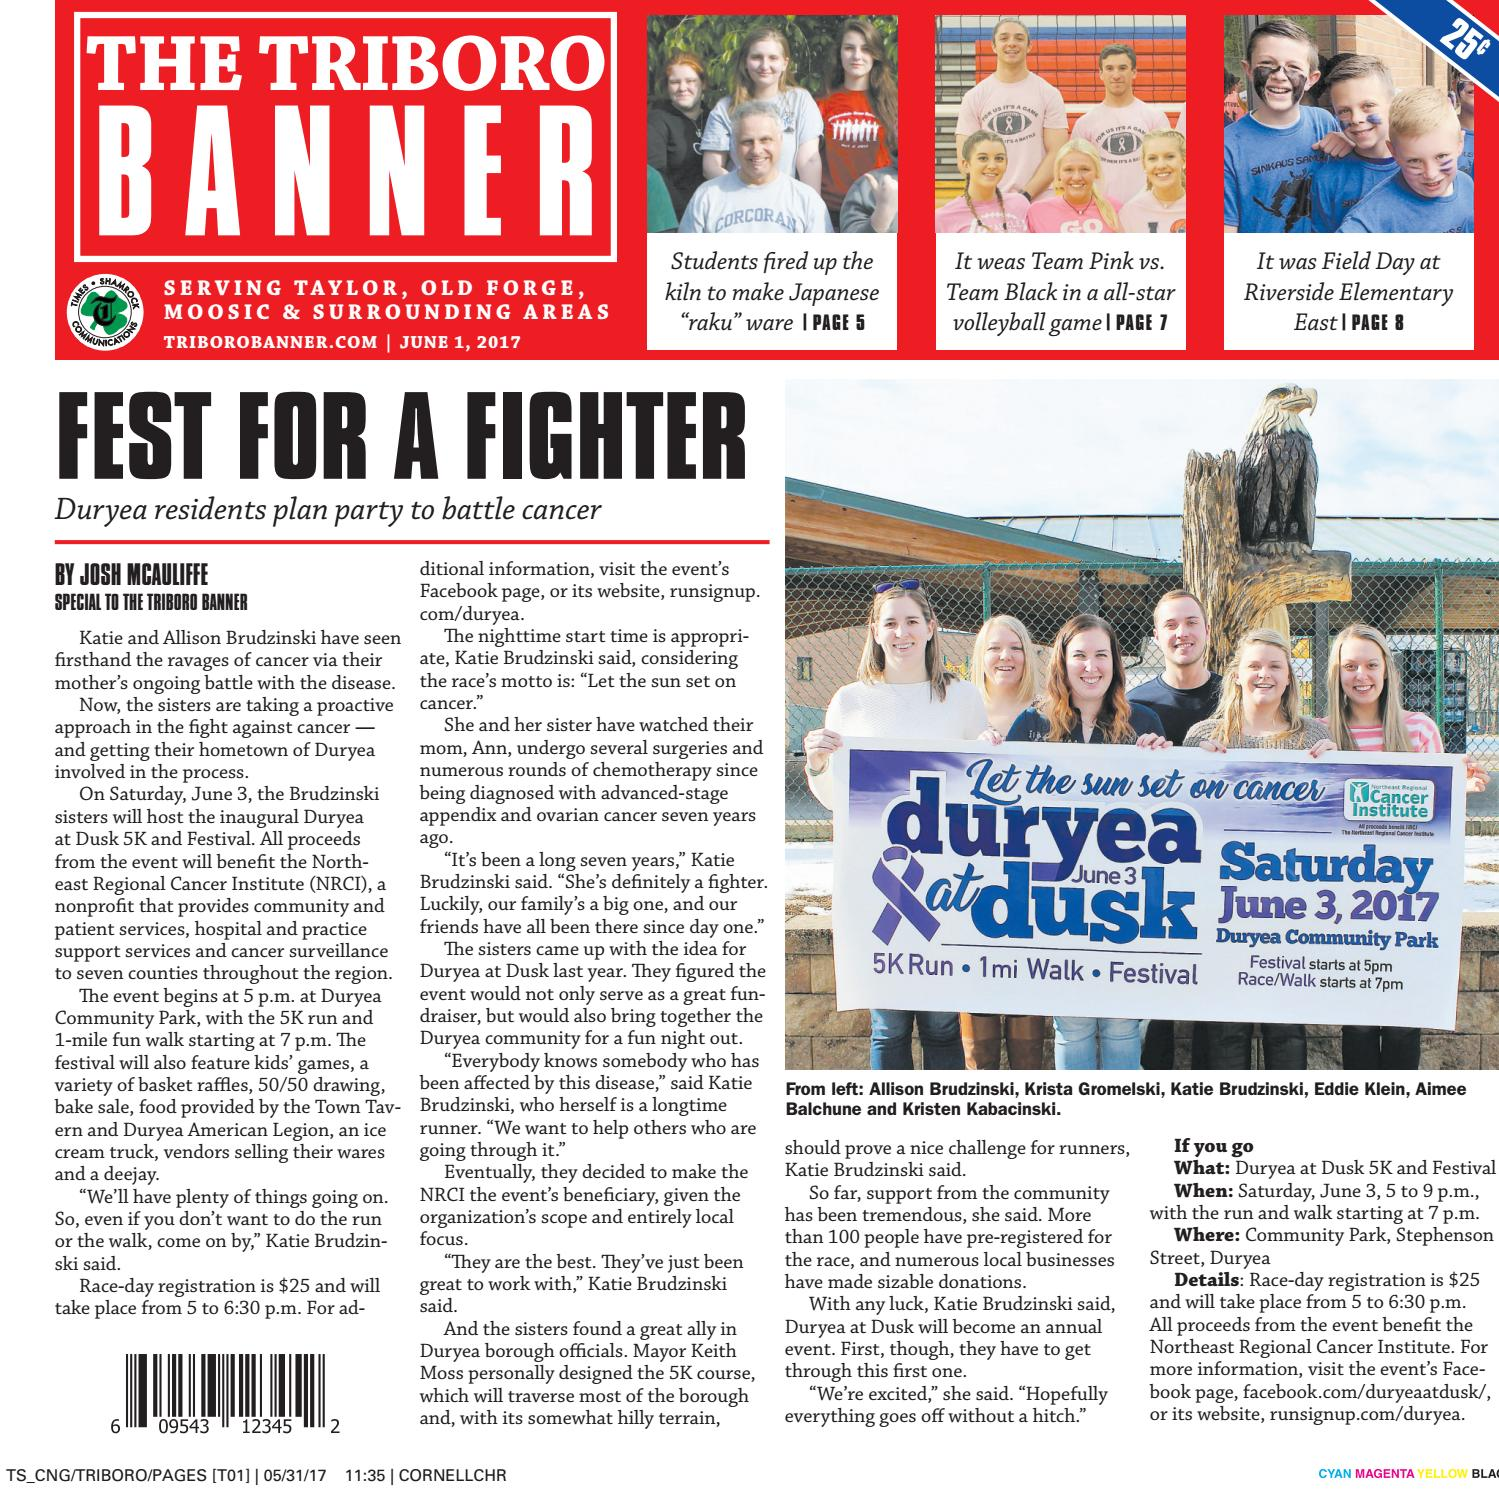 The Triboro Banner 06 01 17 by CNG Newspaper Group issuu